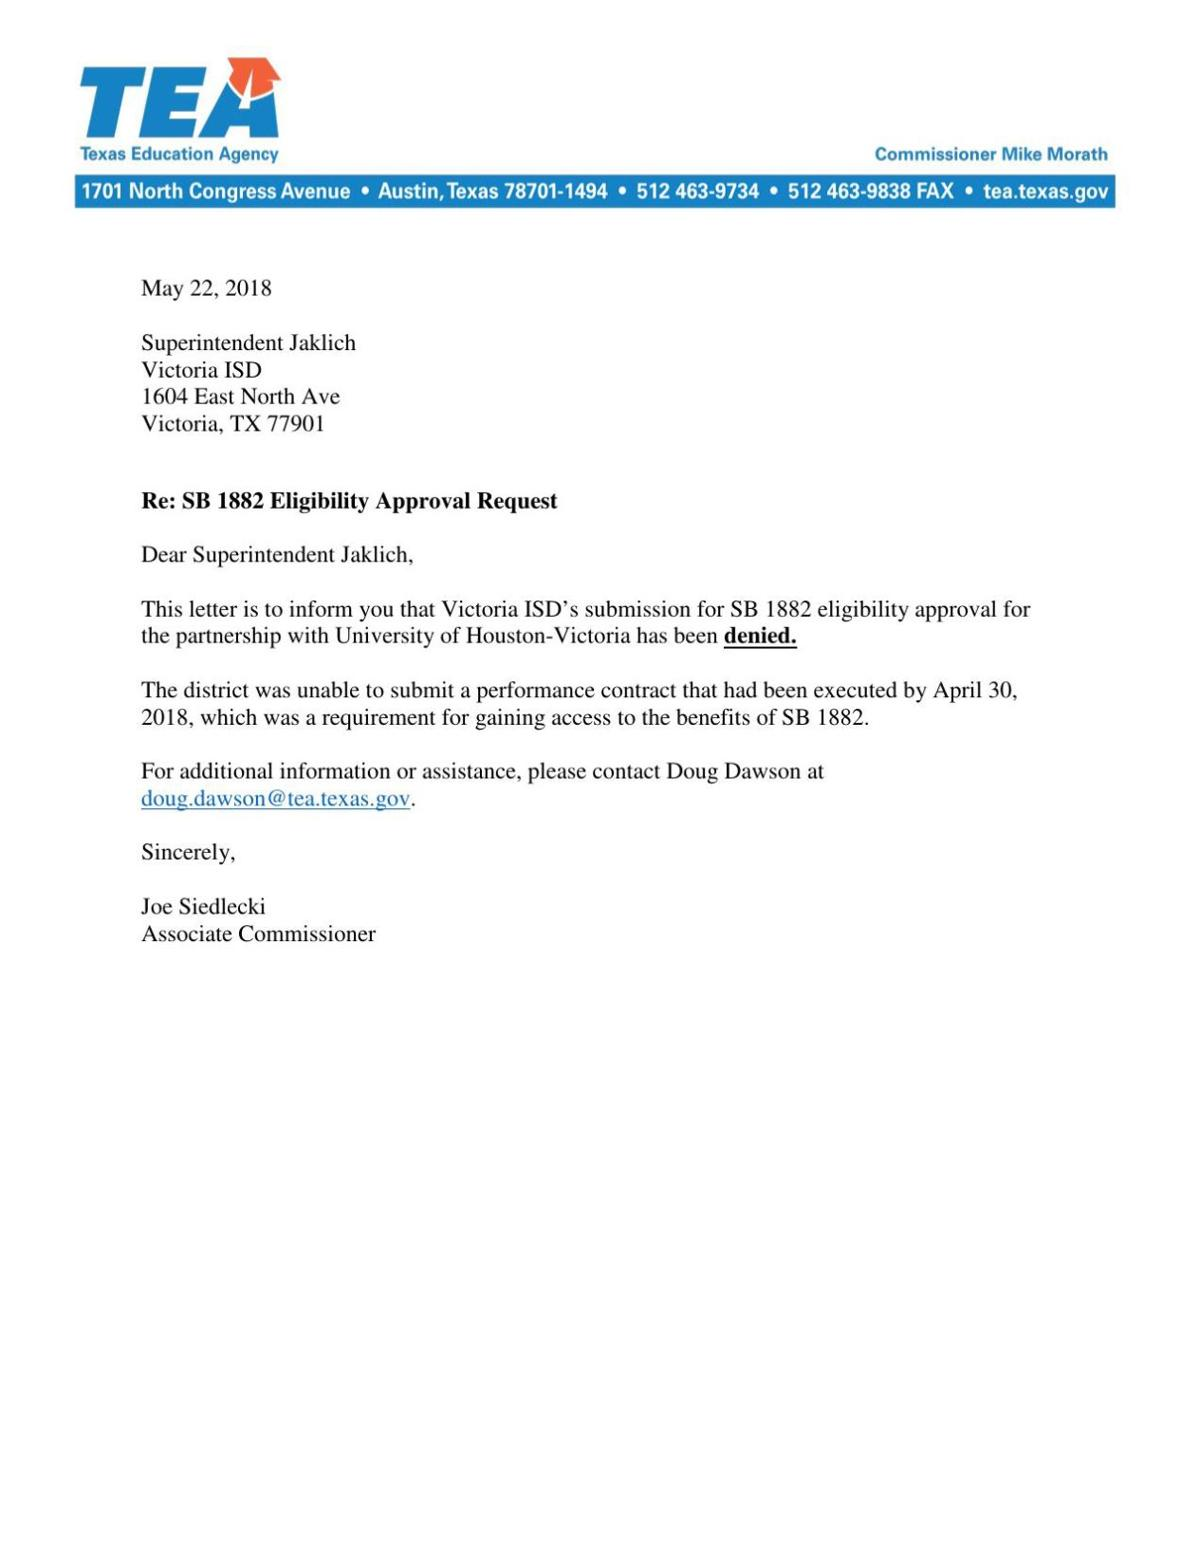 Texas Education Agency rejection letter to Victoria school district